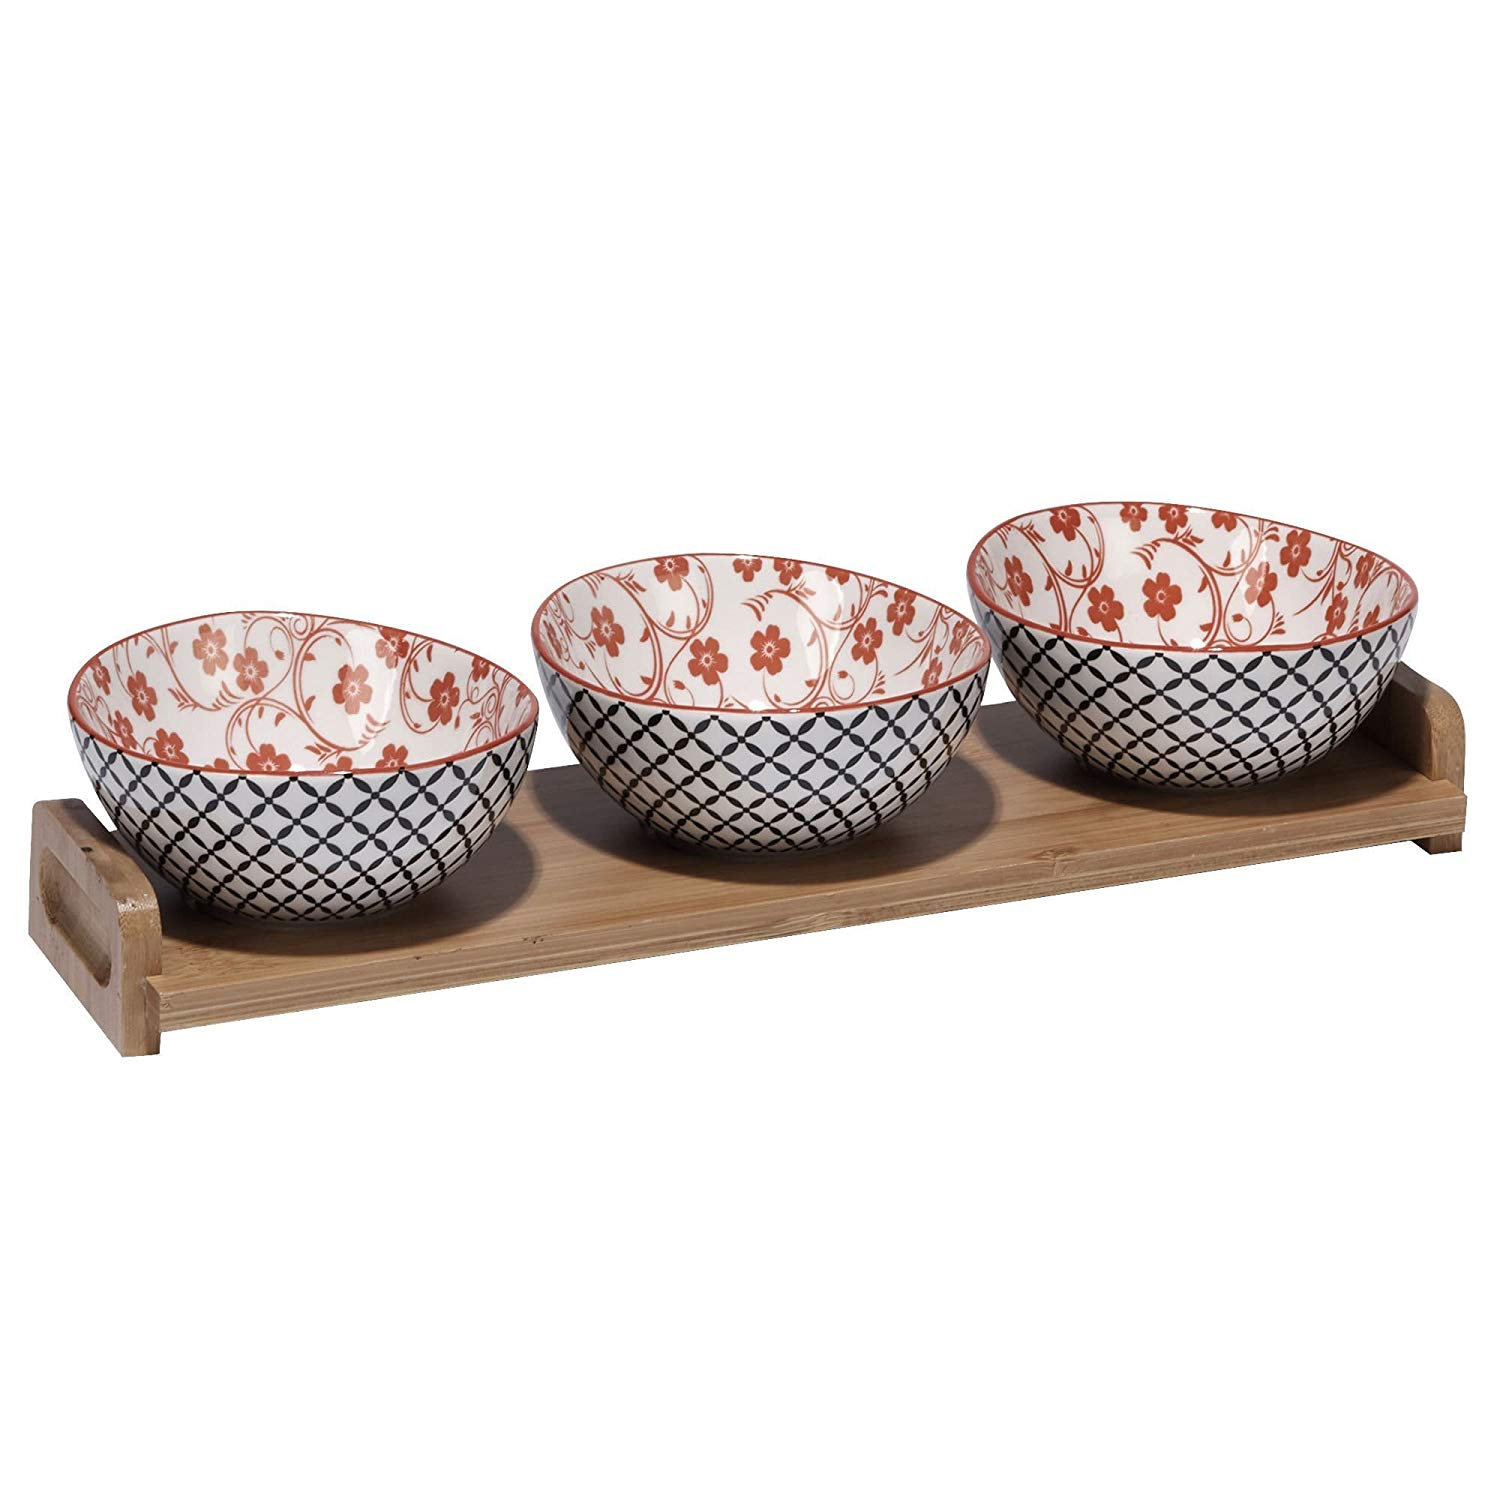 Decorative Serving Tray With Handles Vintage White Fleur De Lis 11 Inch Ceramic Cheese Snack Platter Platters Home Kitchen